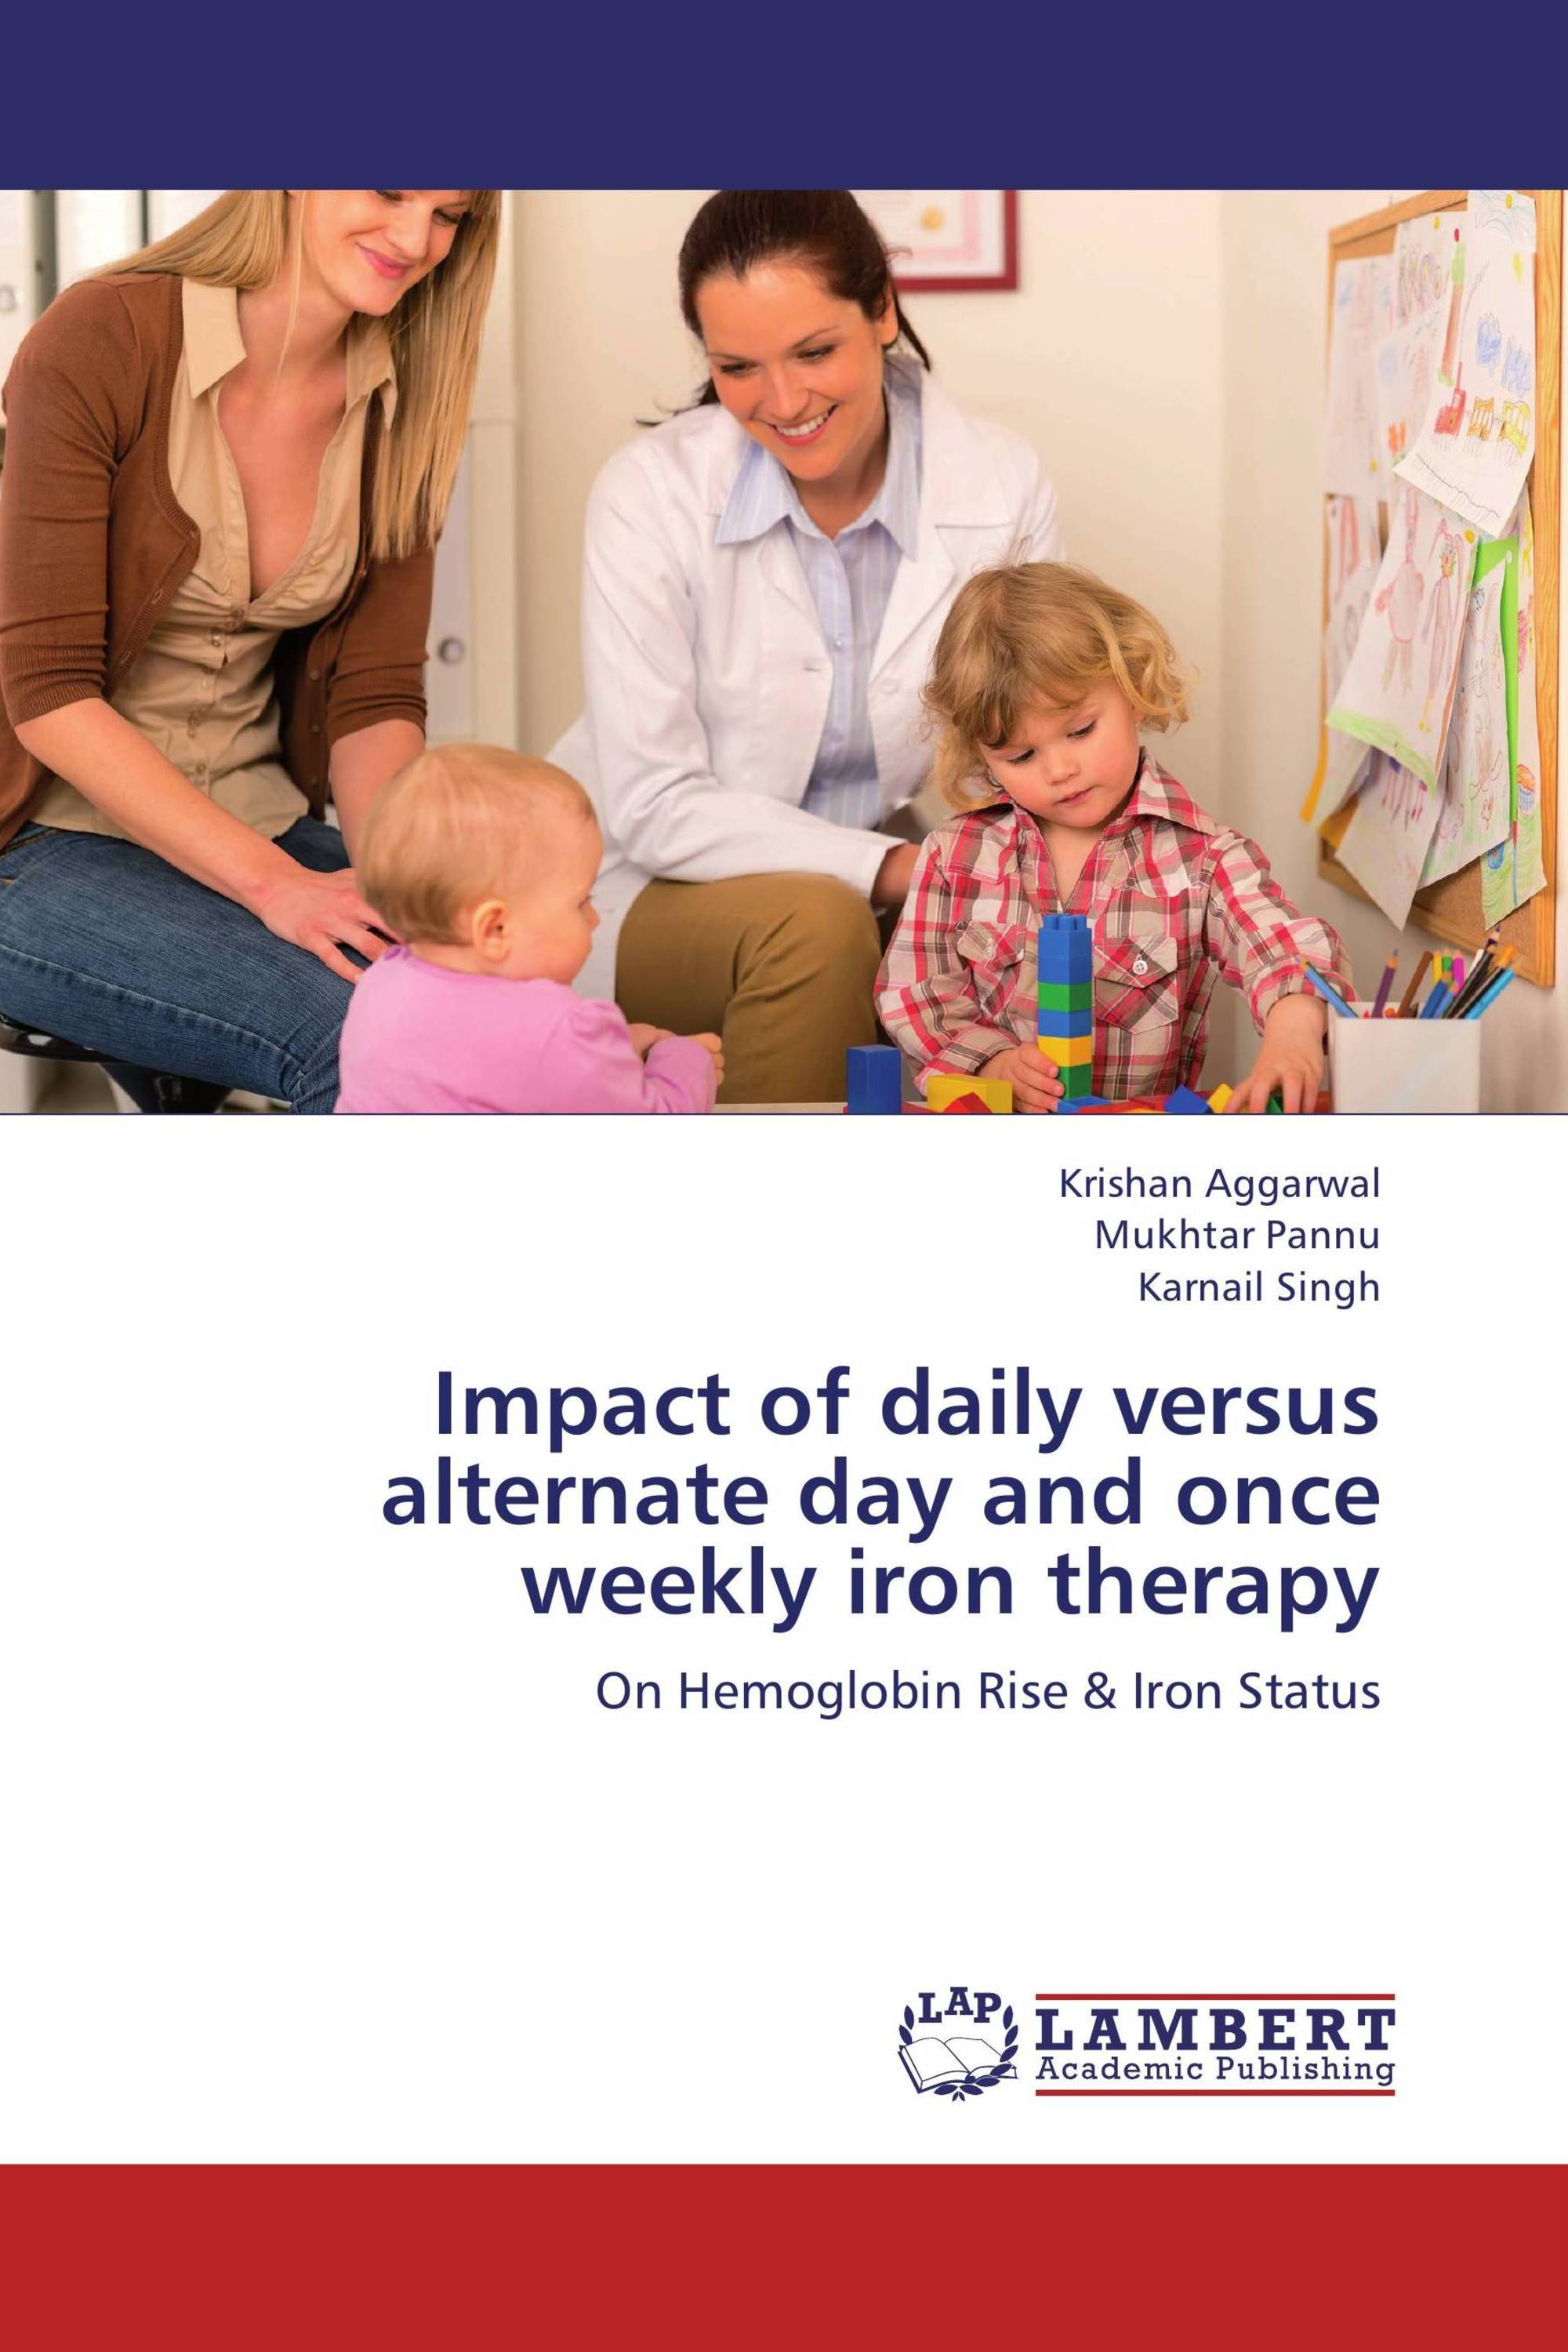 alternate day oral iron therapy - HD1000×1500